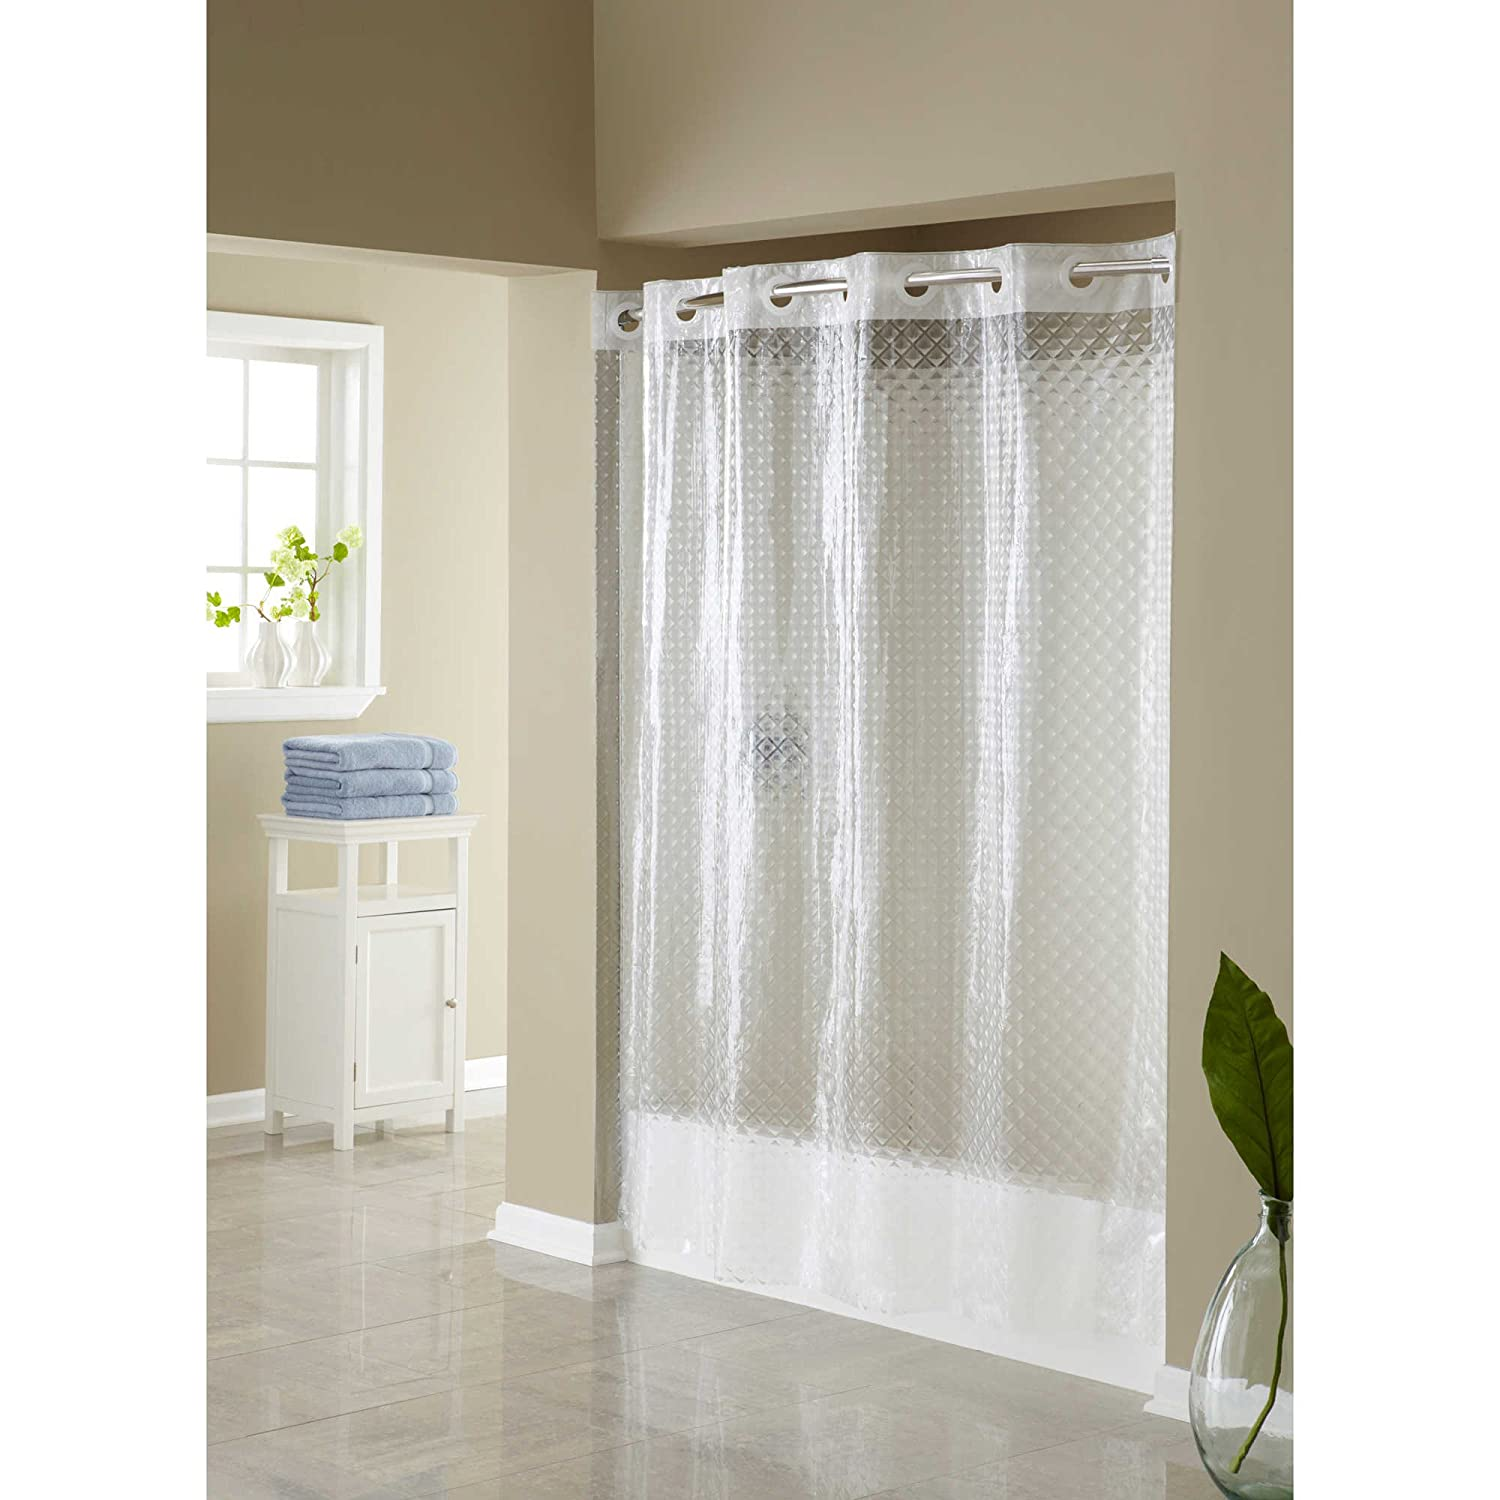 Hookless Clear Shower Curtain.Hookless Hangs In Seconds Eva Shower Curtain Clear Diamond